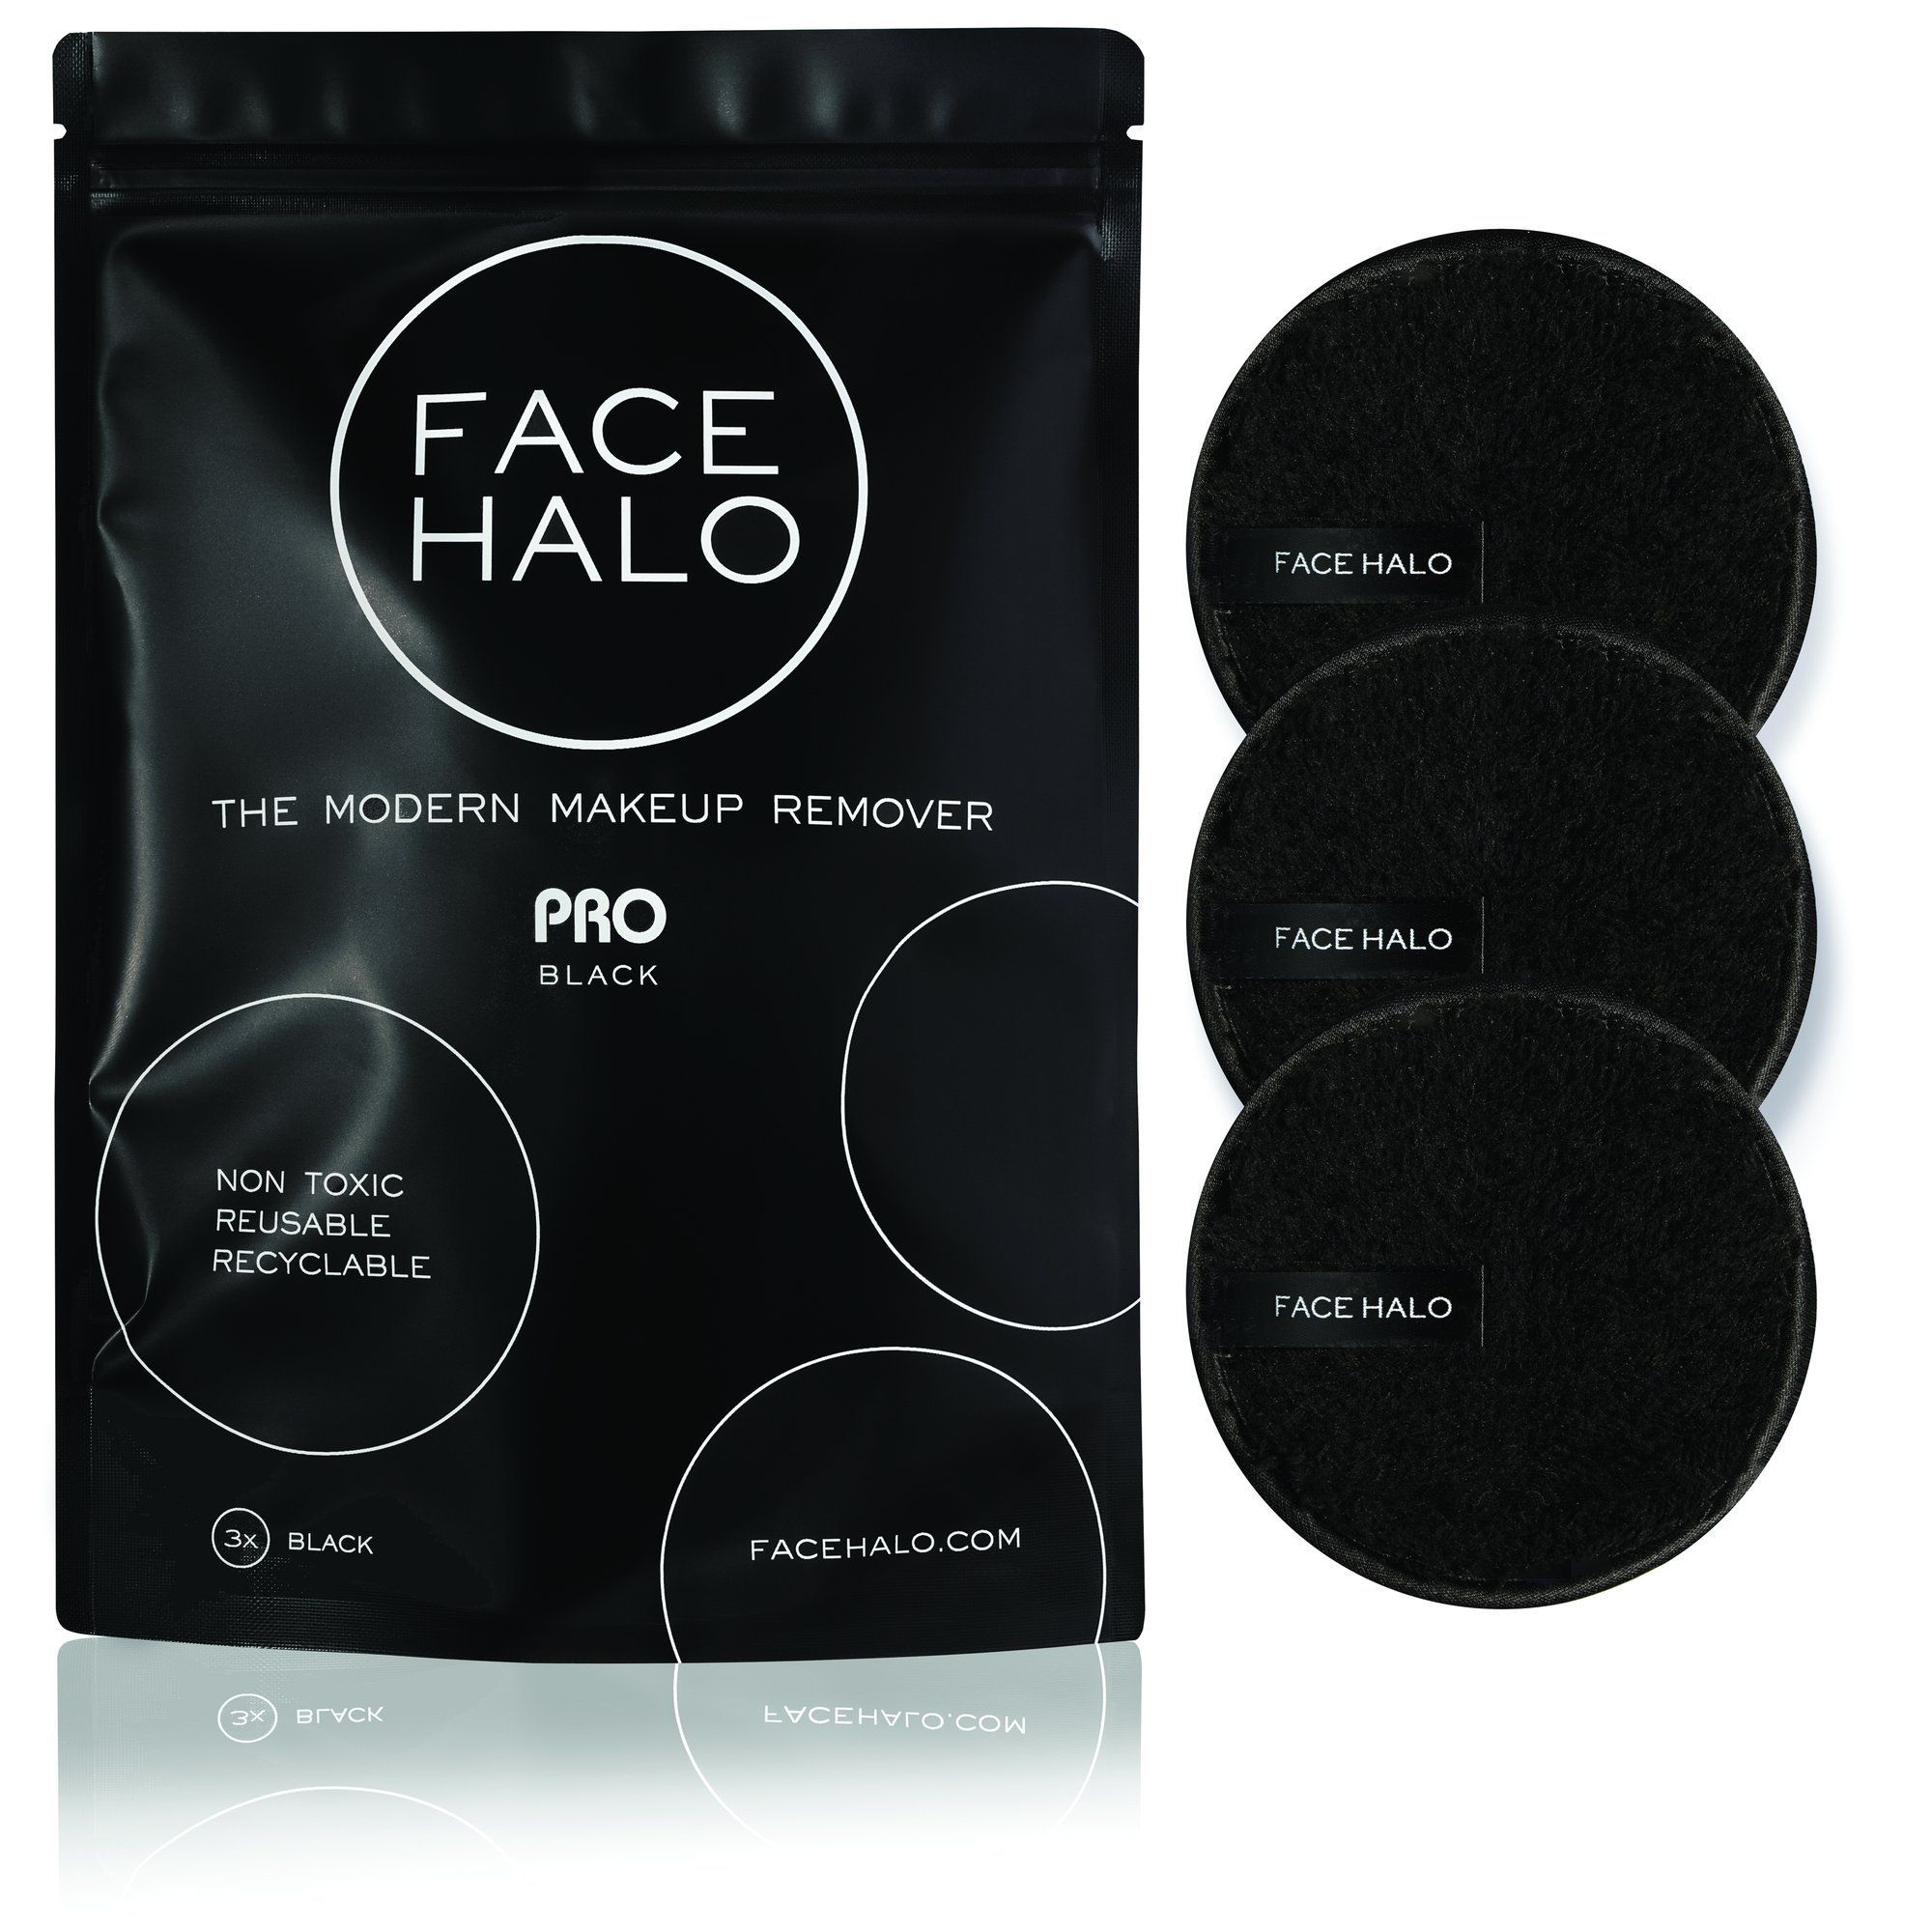 NEW! Face Halo beautyproductsmakeup in 2020 Makeup